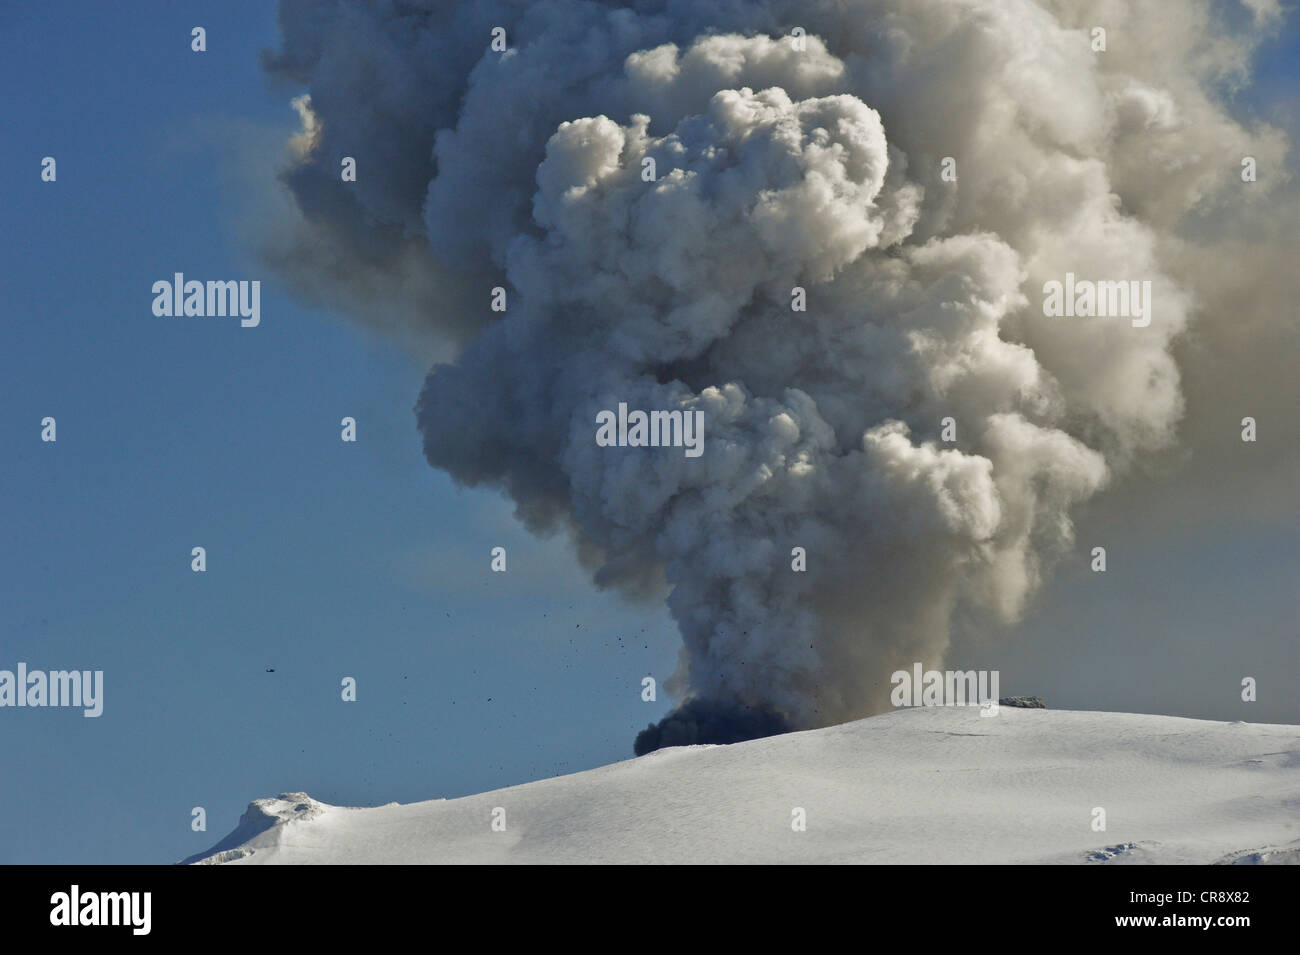 A helicopter flying in close proximity to the crater of Eyjafjallajoekull Volcano, while large lava bombs are being - Stock Image